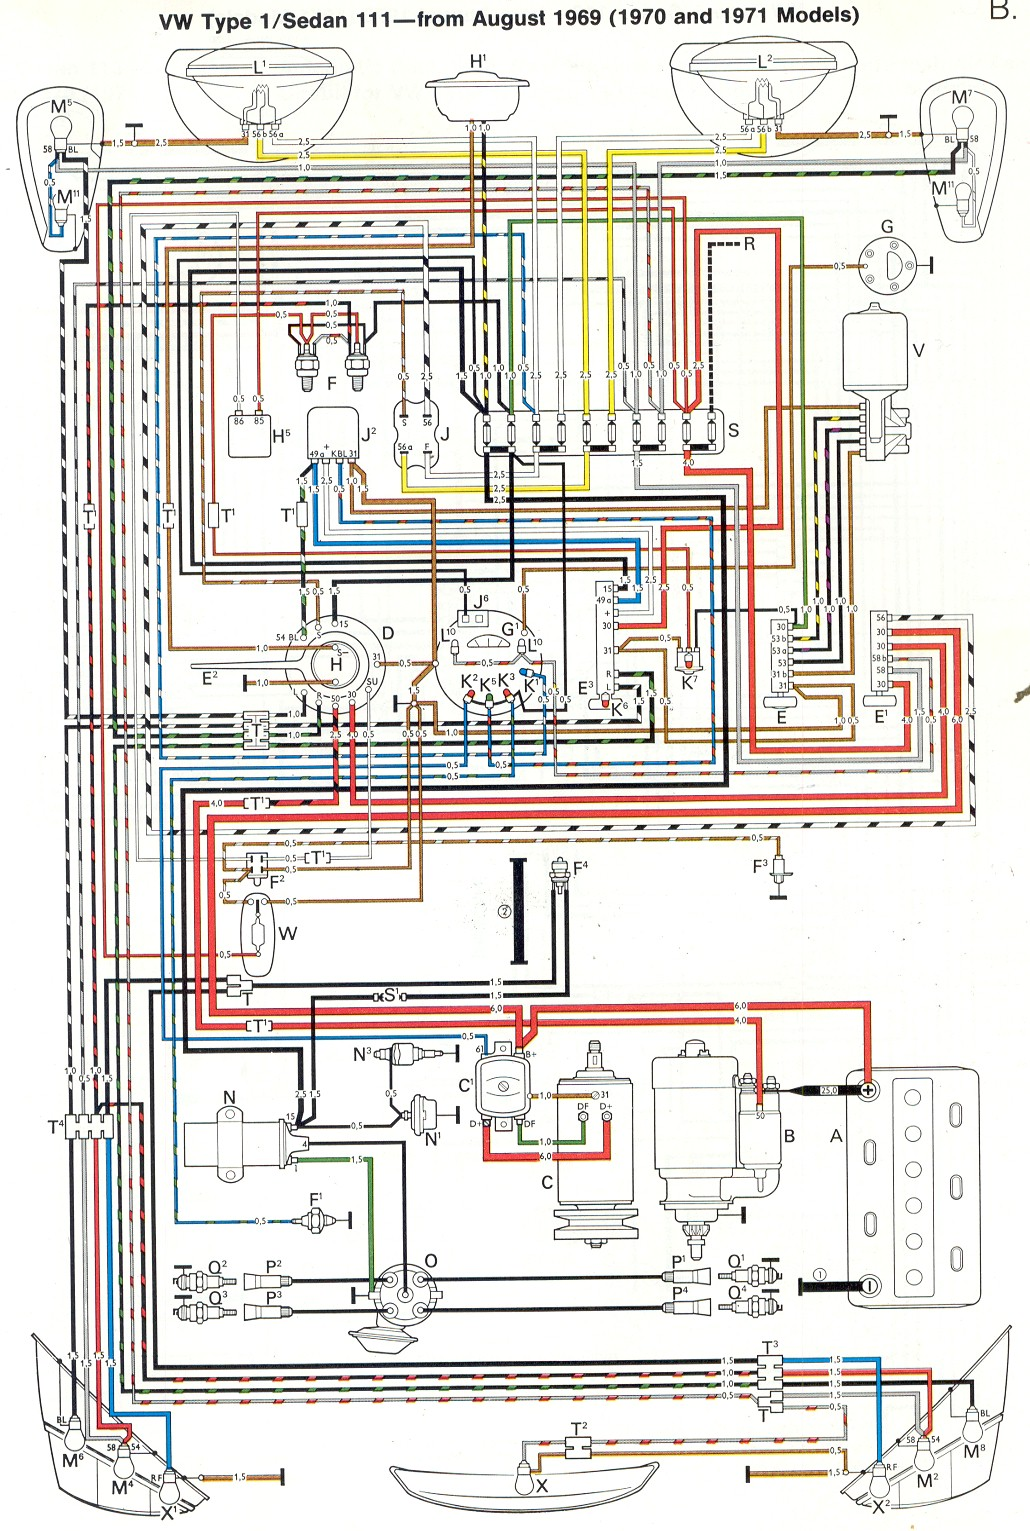 1970 Vw Engine Wiring Diagram Just Another Blog 1965 Beetle Thegoldenbugcom 74 Diagrams Automotive U2022 Rh Aesar Store